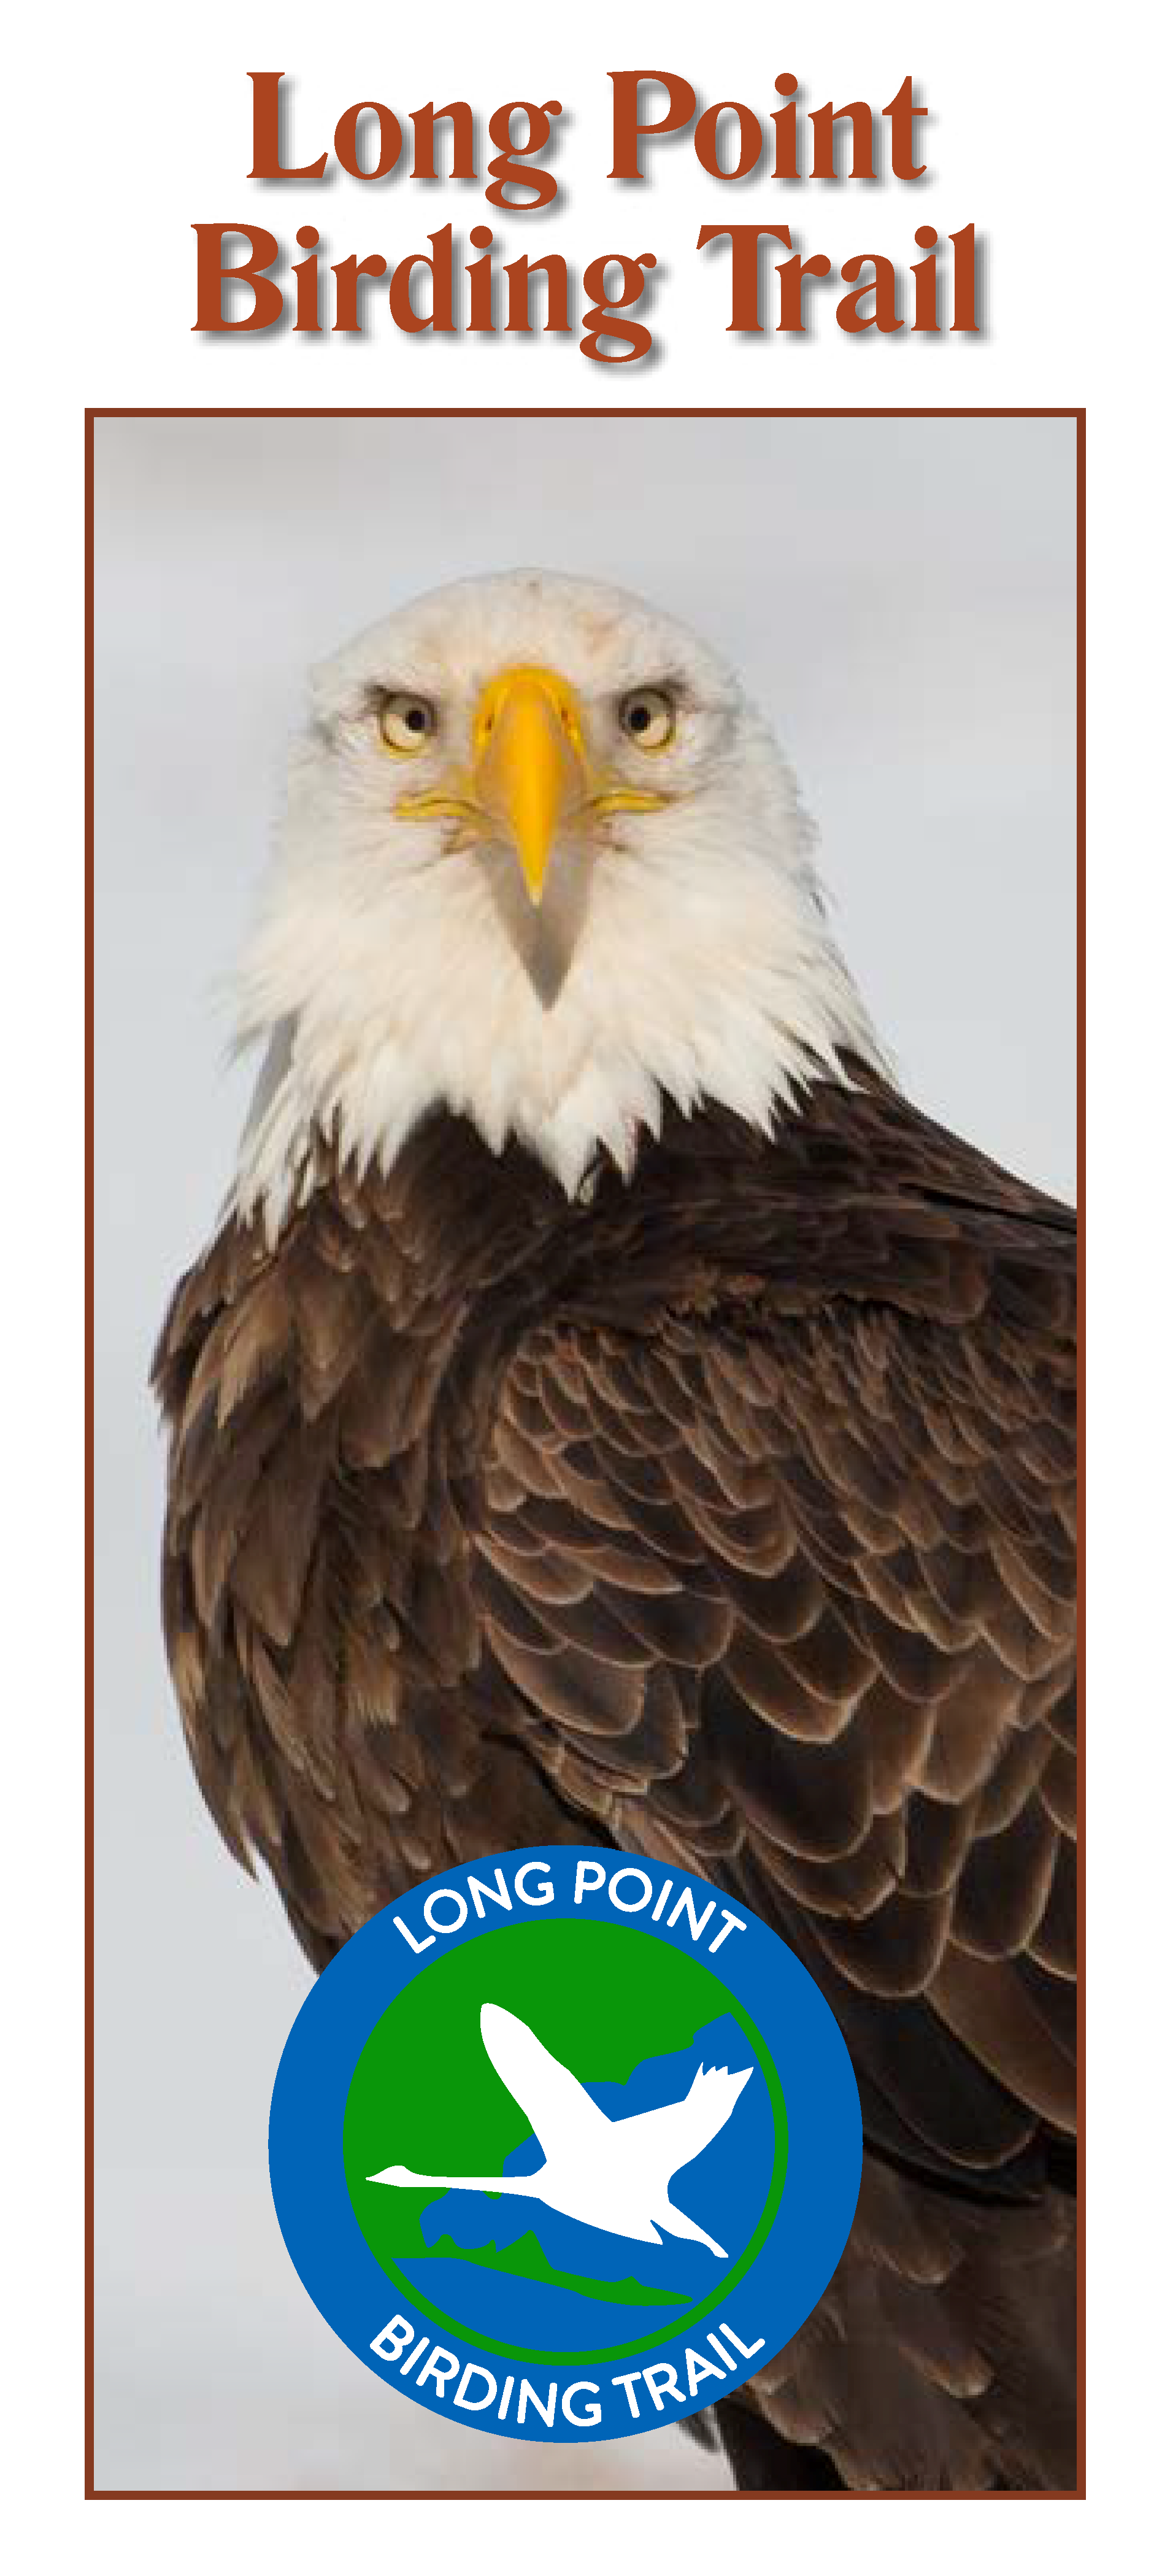 Link to Long Point Birding Trail brochure. On the cover is a portrait of an adult Bald Eagle looking at us with a piercing stare.